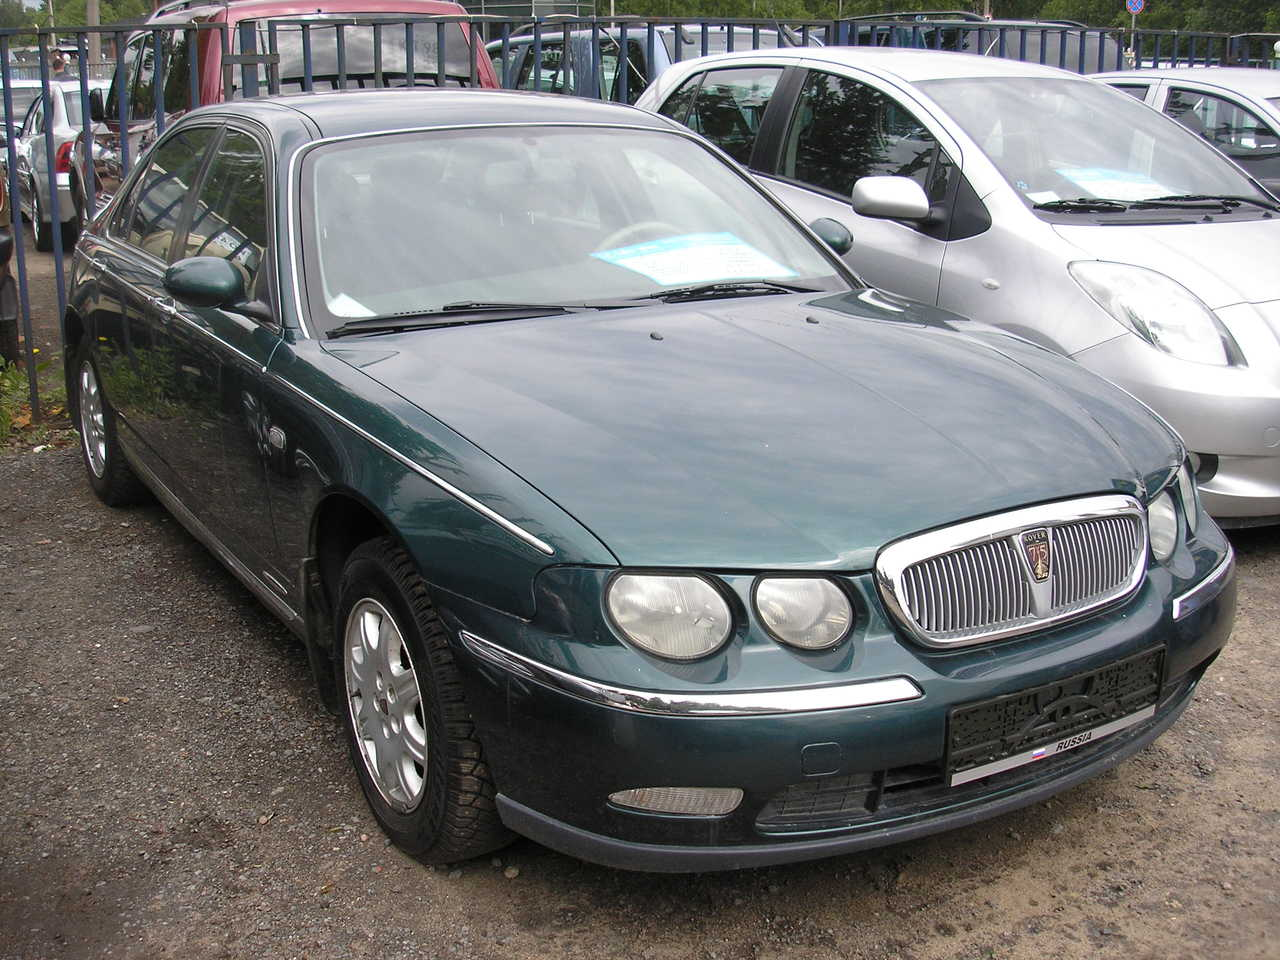 2000 rover 75 photos 2500cc gasoline ff automatic for sale. Black Bedroom Furniture Sets. Home Design Ideas